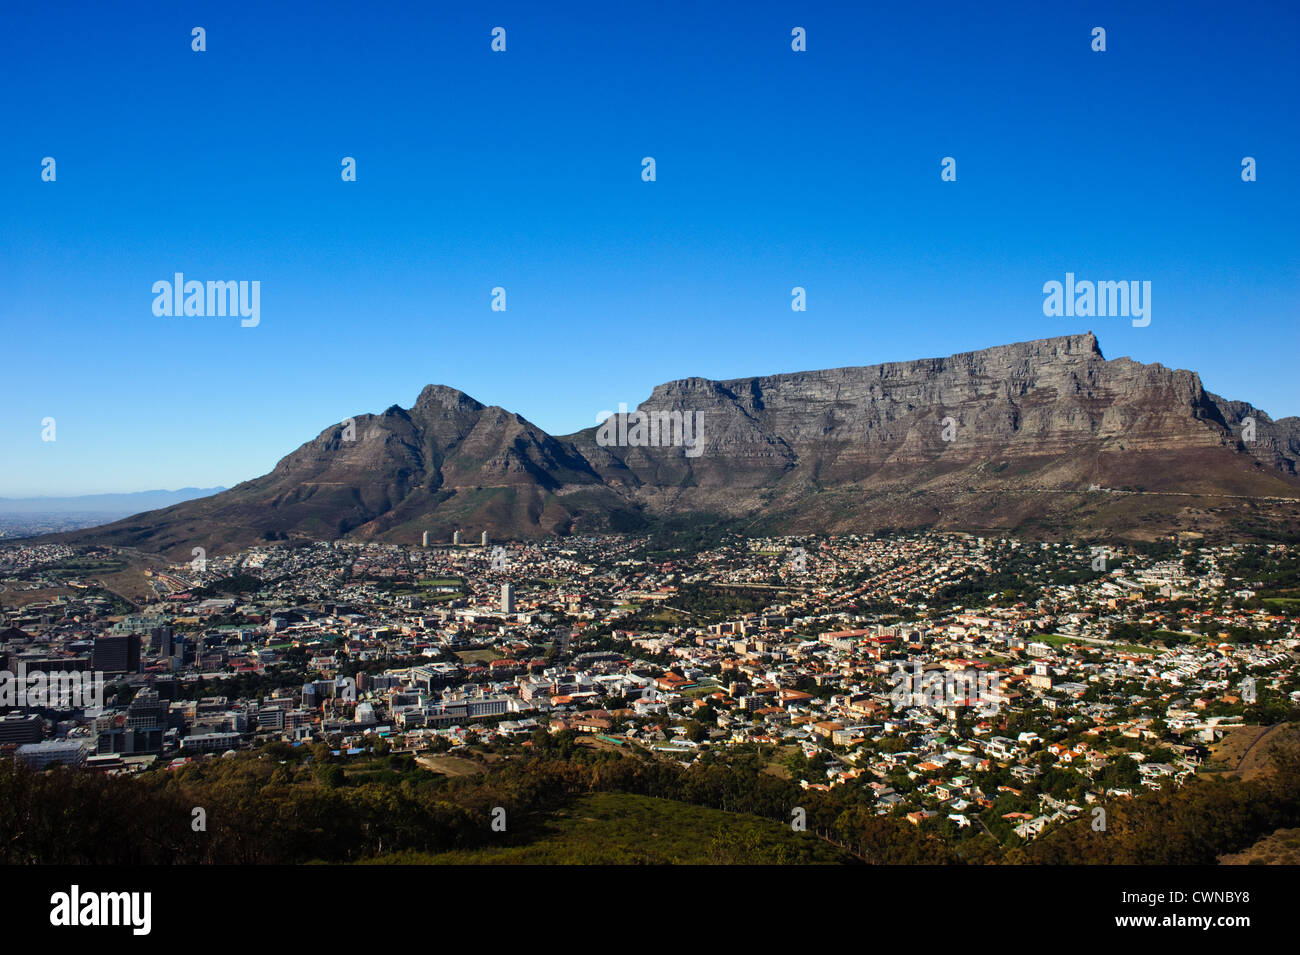 Table Mountain and Cape Town City. - Stock Image